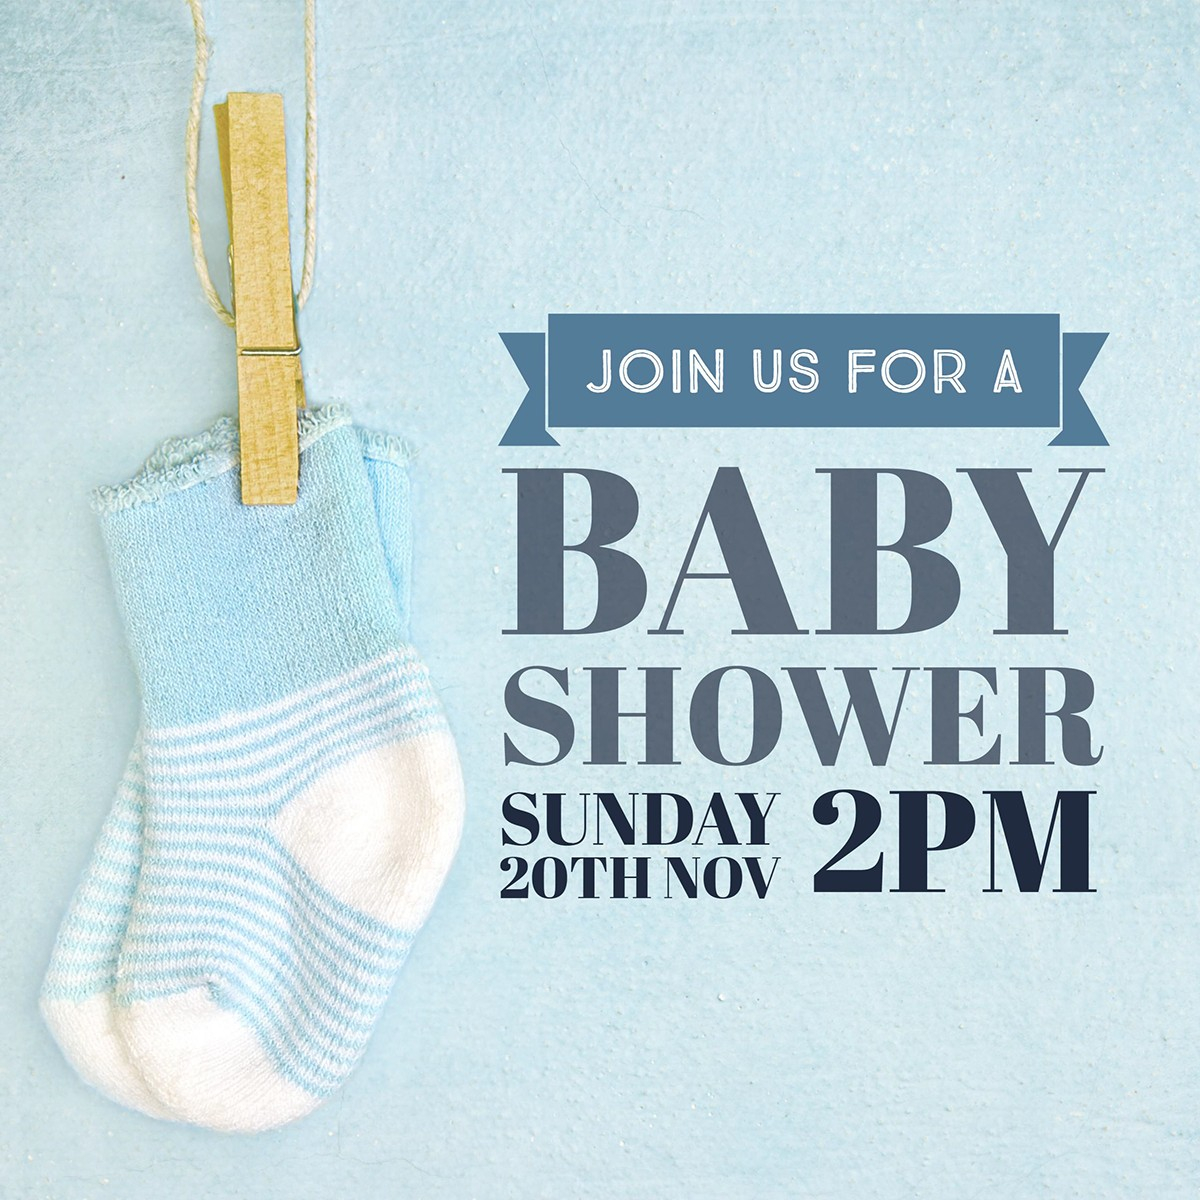 Lovely Make Your Own Baby Shower Invitations For Free | Adobe Spark regarding Lovely Free Baby Shower Invitations